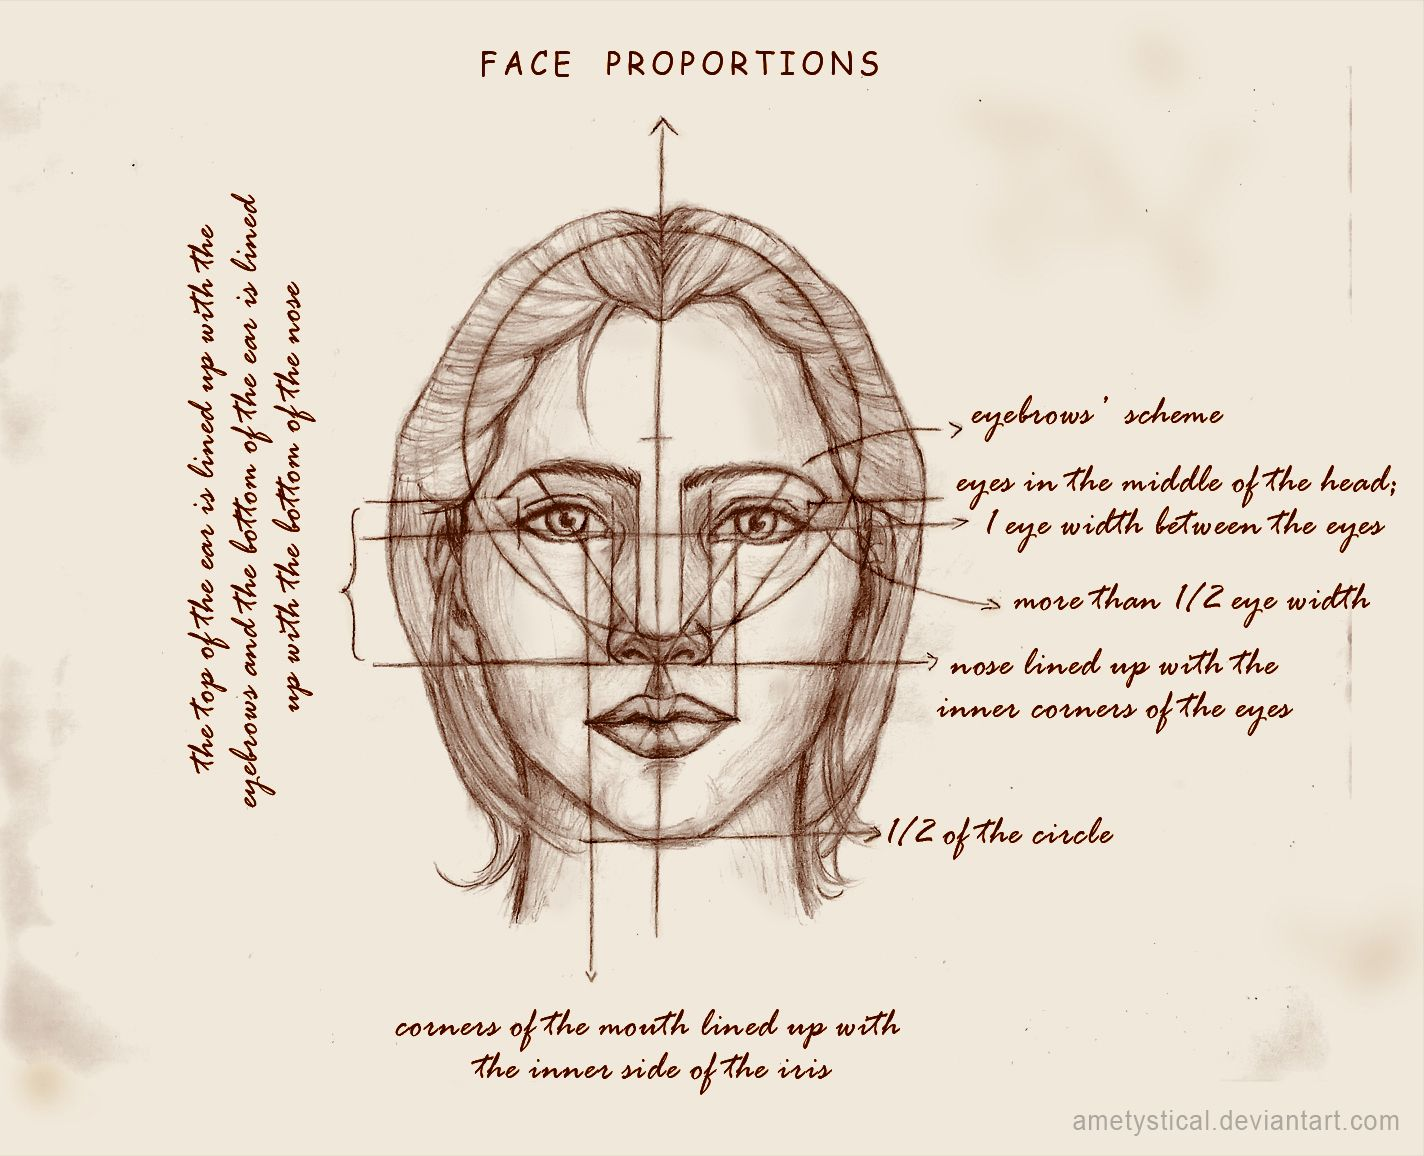 Real Face Proportions By Ametysticalviantart On Deviantart